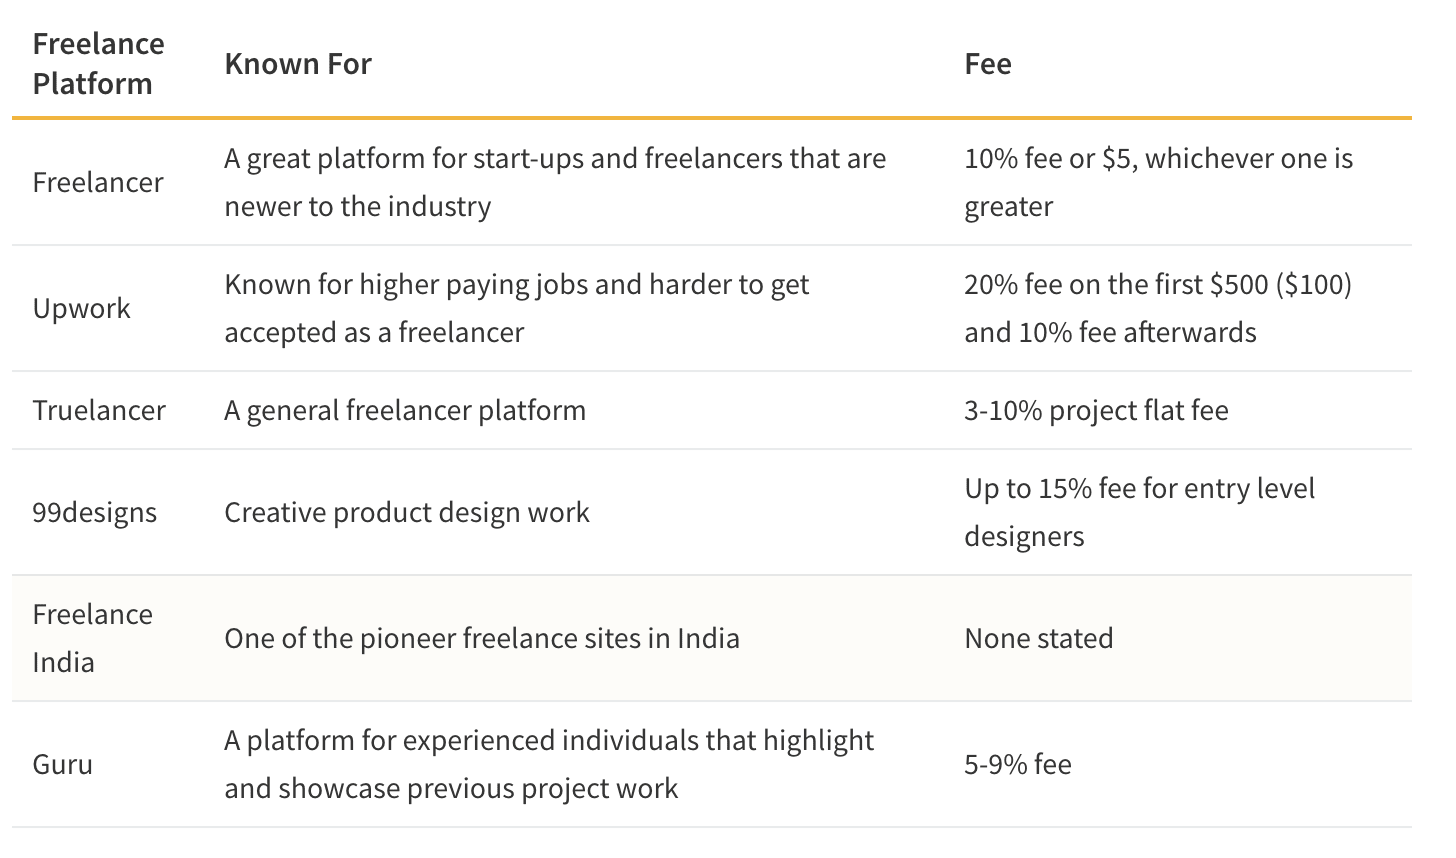 Table showing Different Freelance Platforms